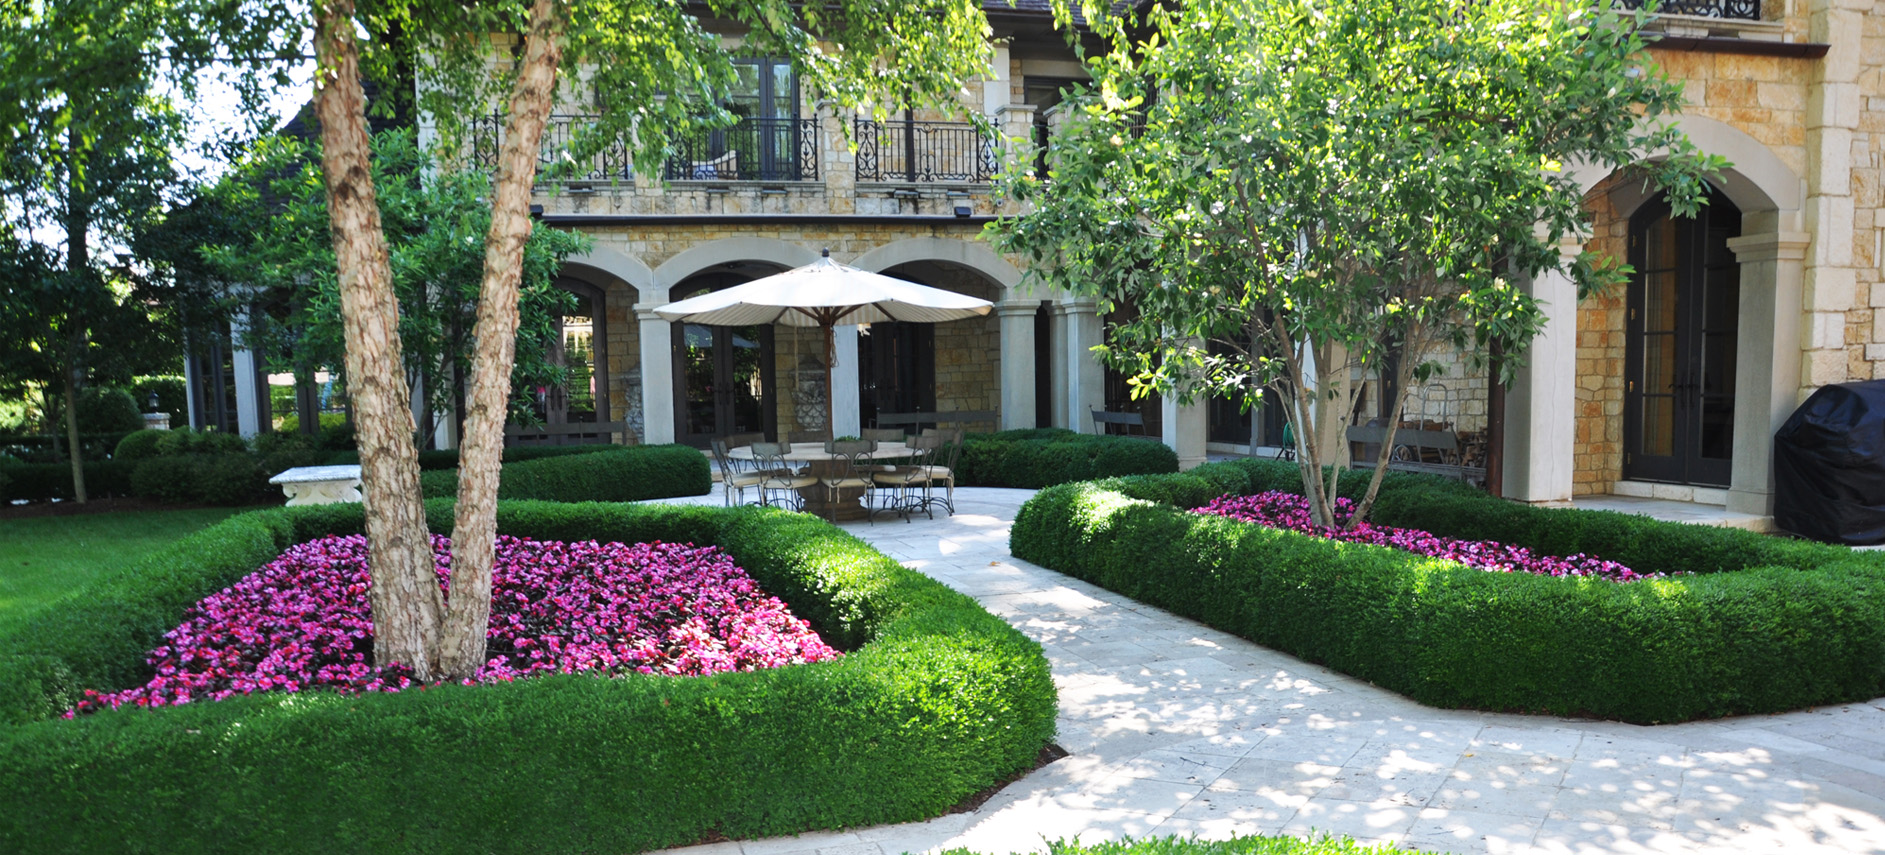 5 Reasons to Invest in a Professional Landscape Designer